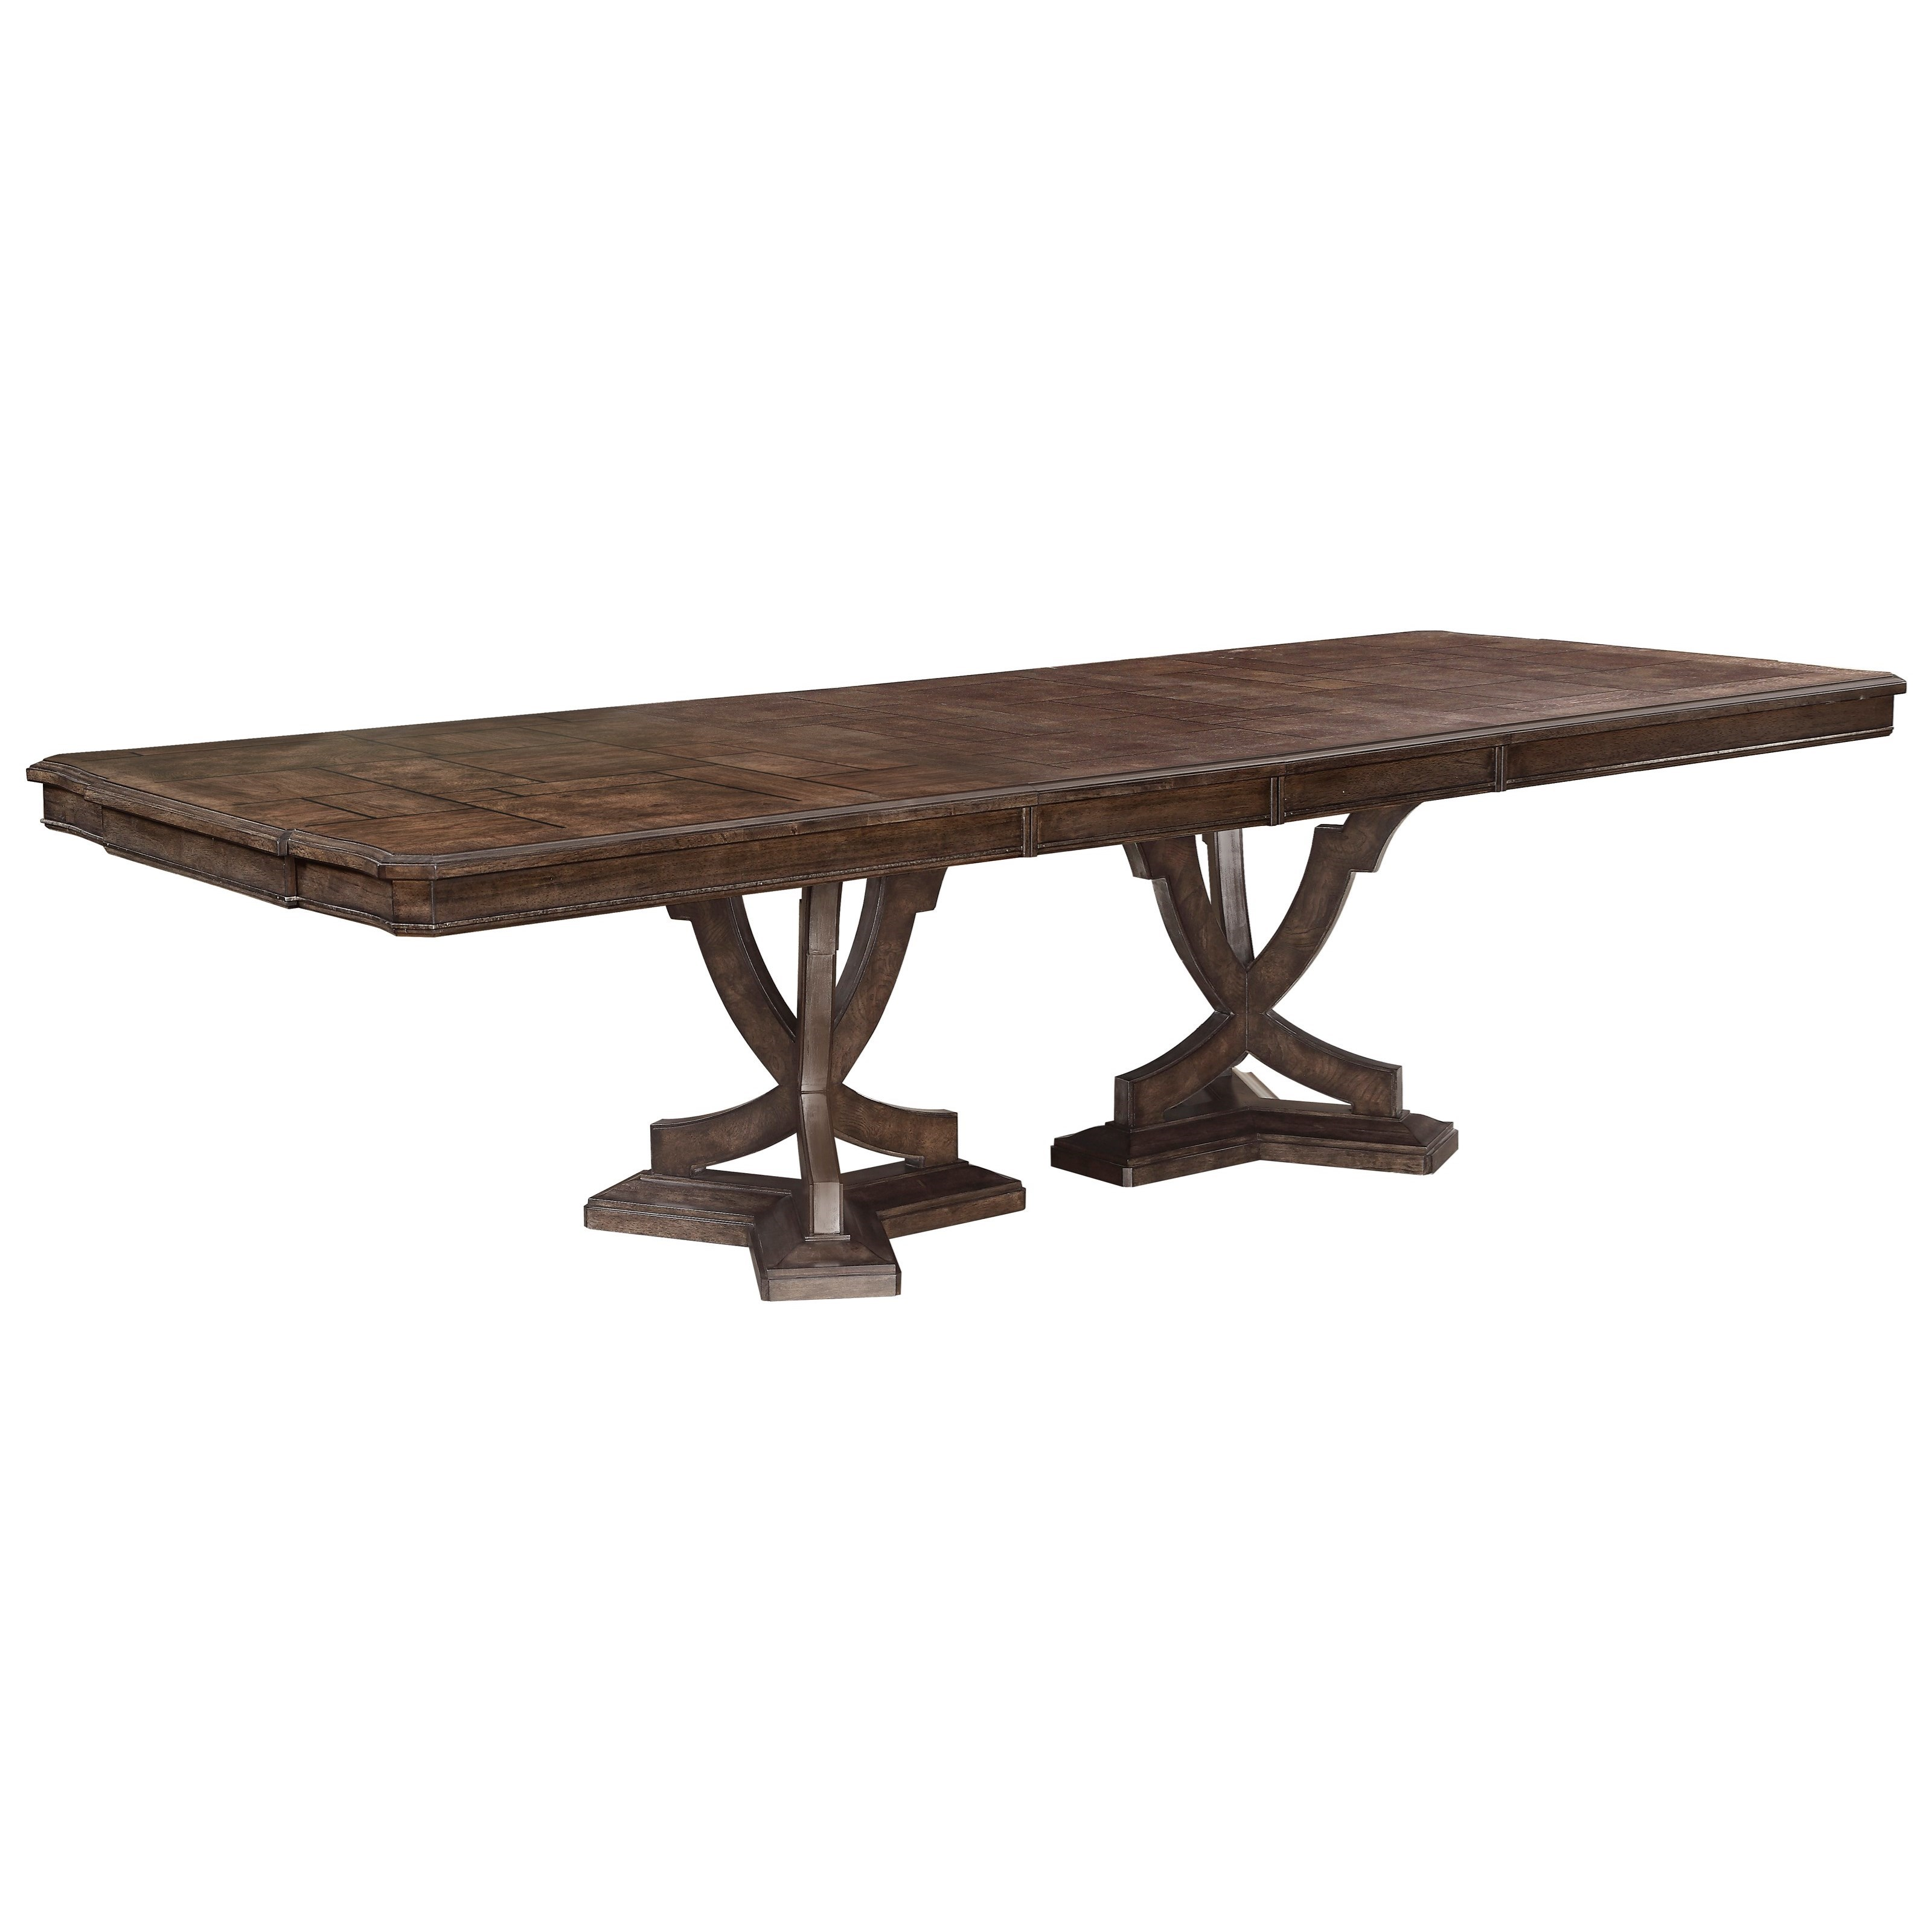 Landmark Double Pedestal Dining Table by A.R.T. Furniture Inc at Home Collections Furniture